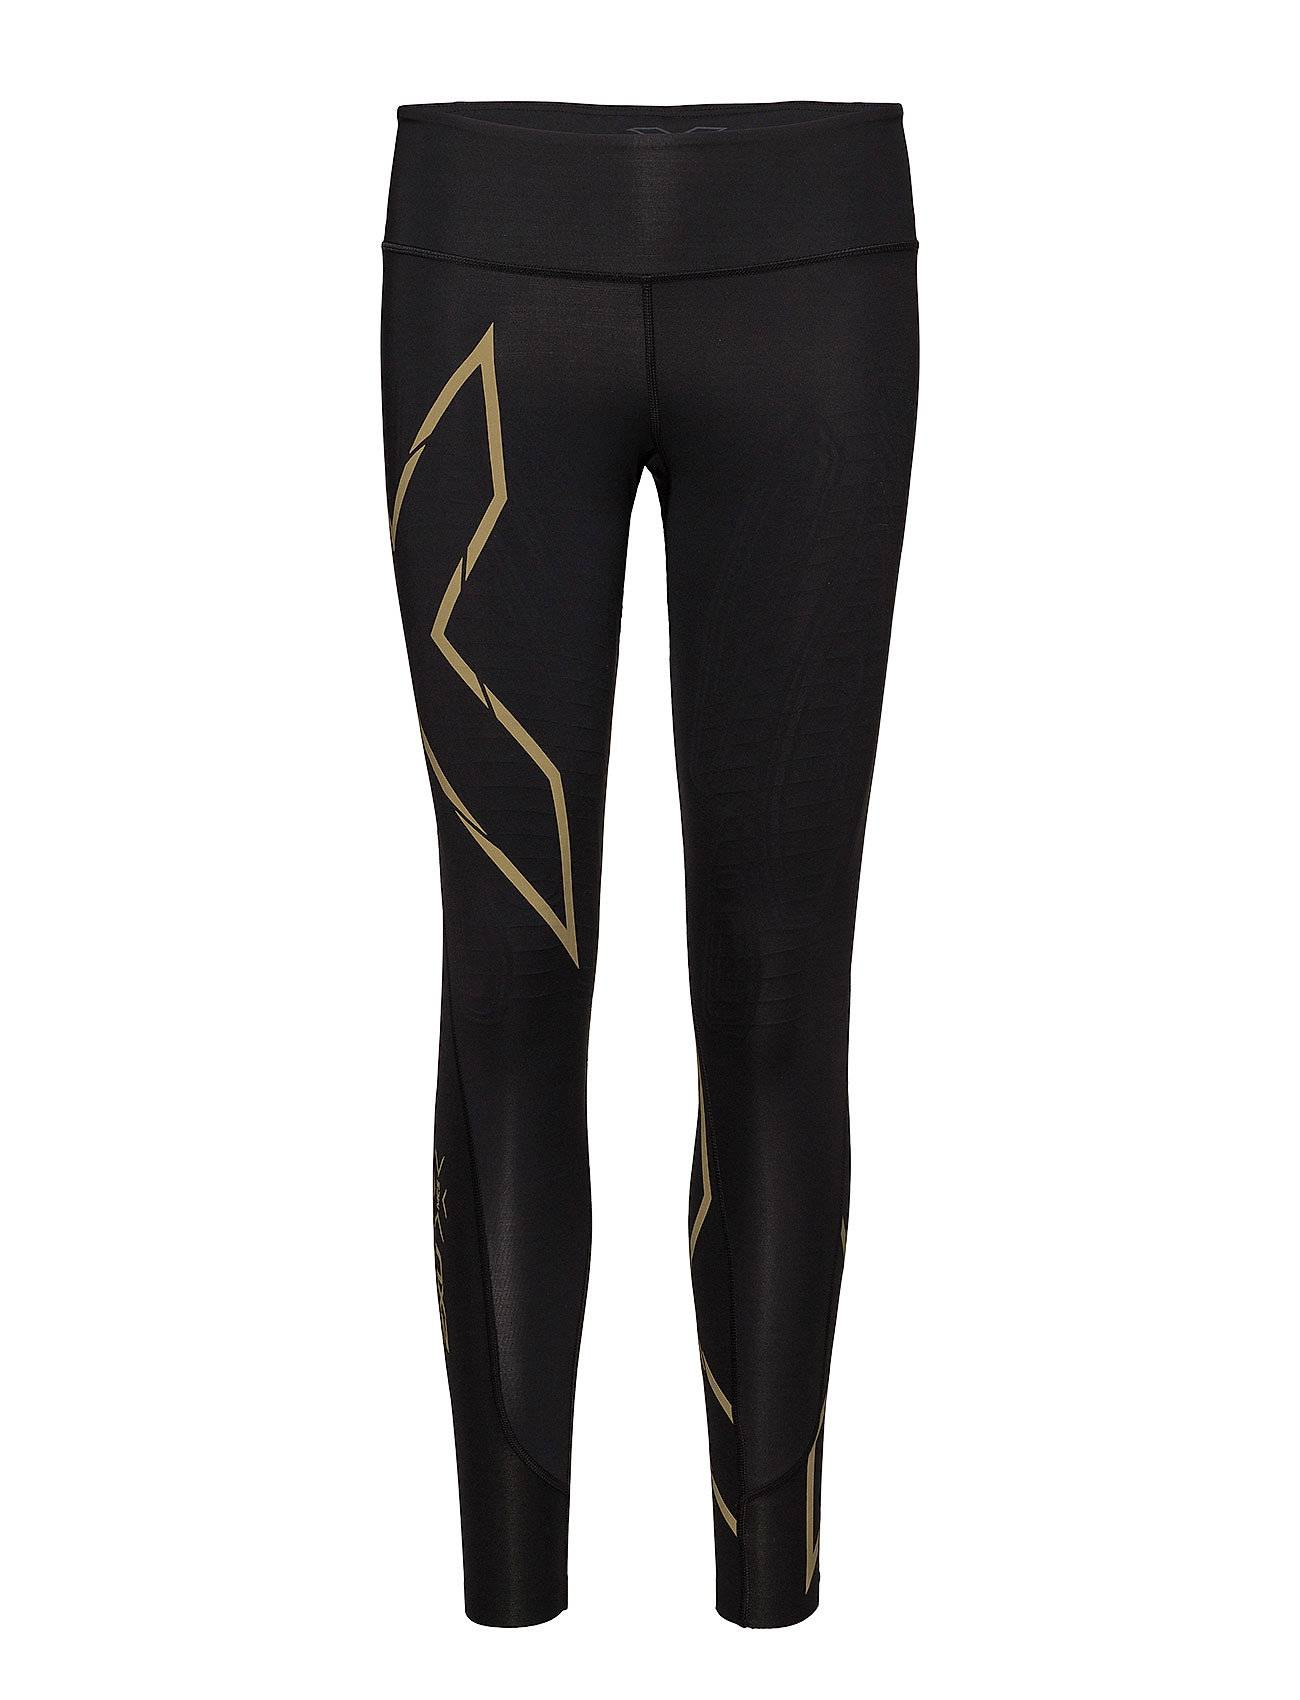 2XU Mcs Run Comp Tights